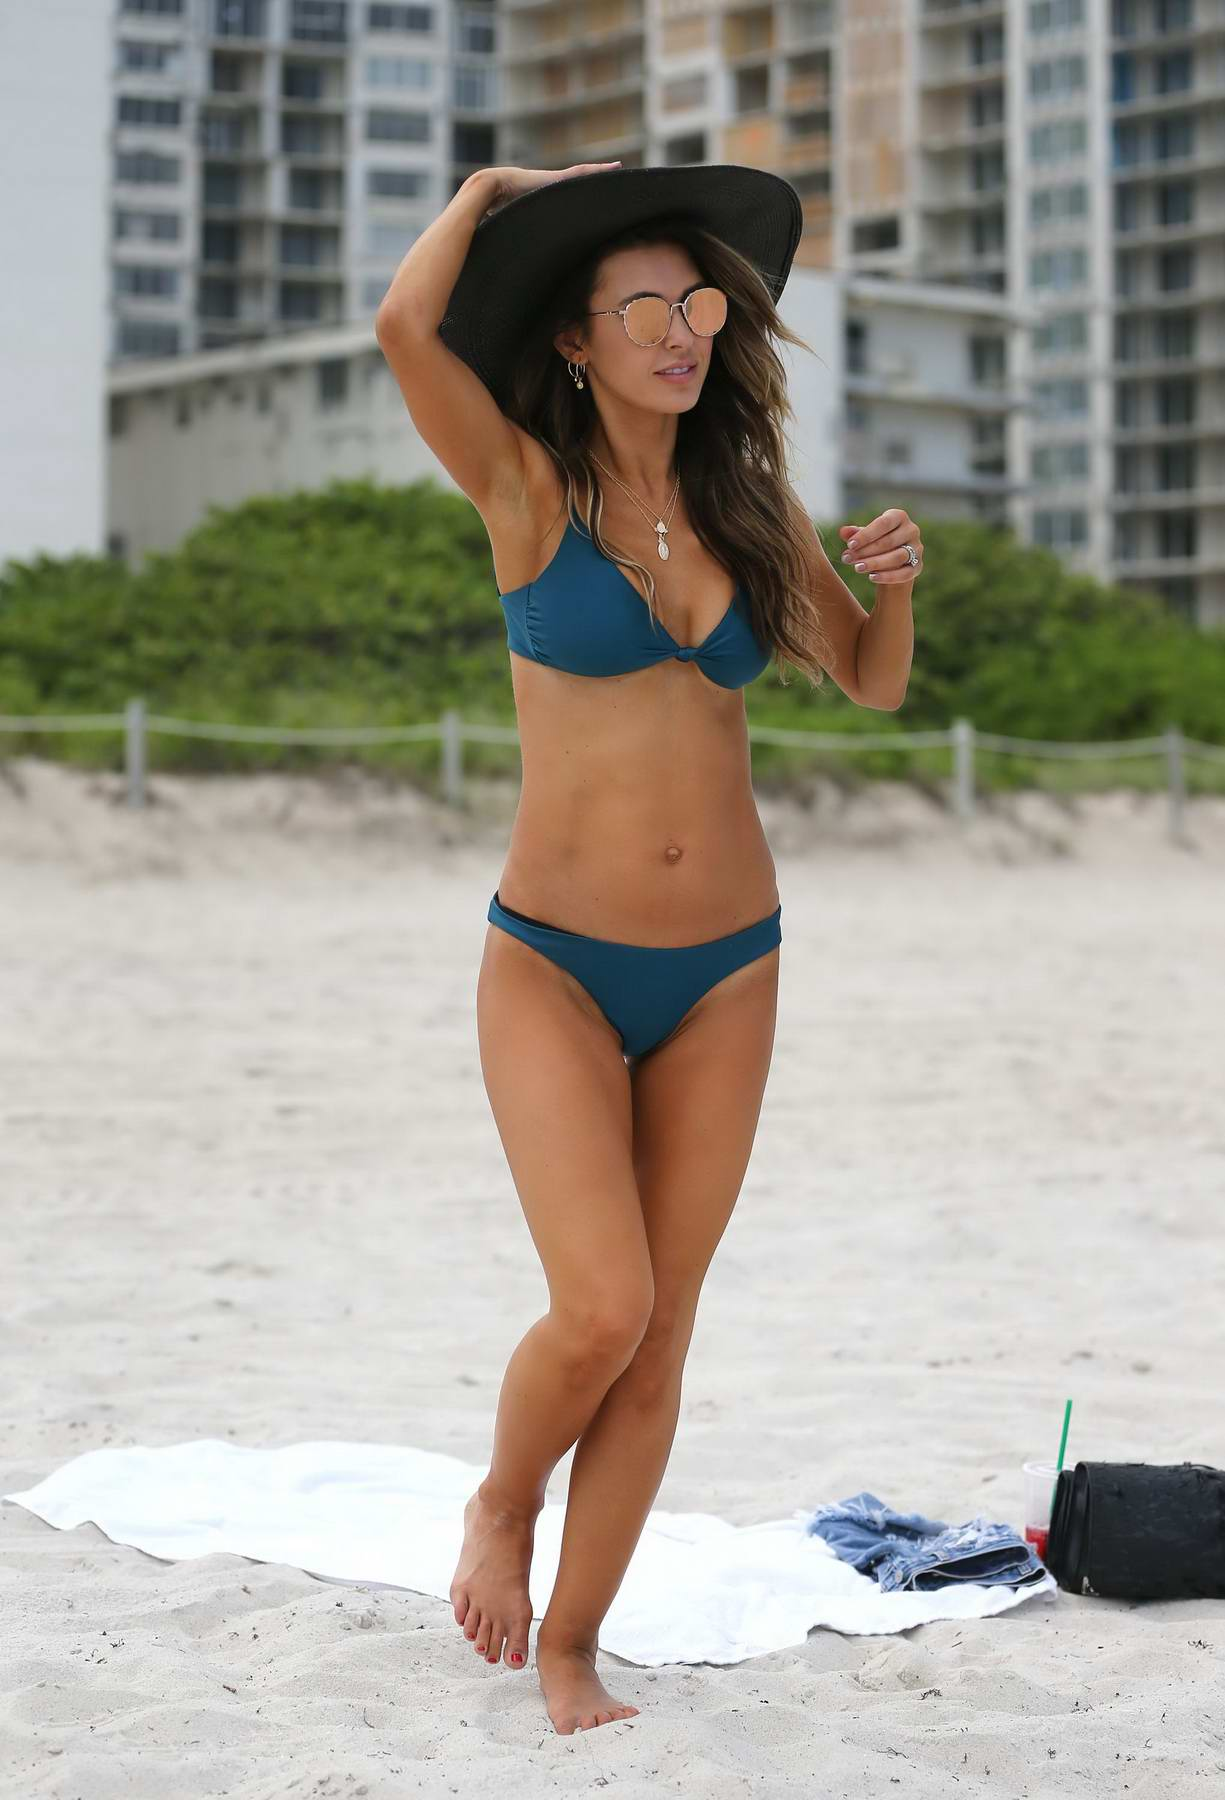 Audrina Patridge in a Blue Bikini relaxing at the Beach in Miami